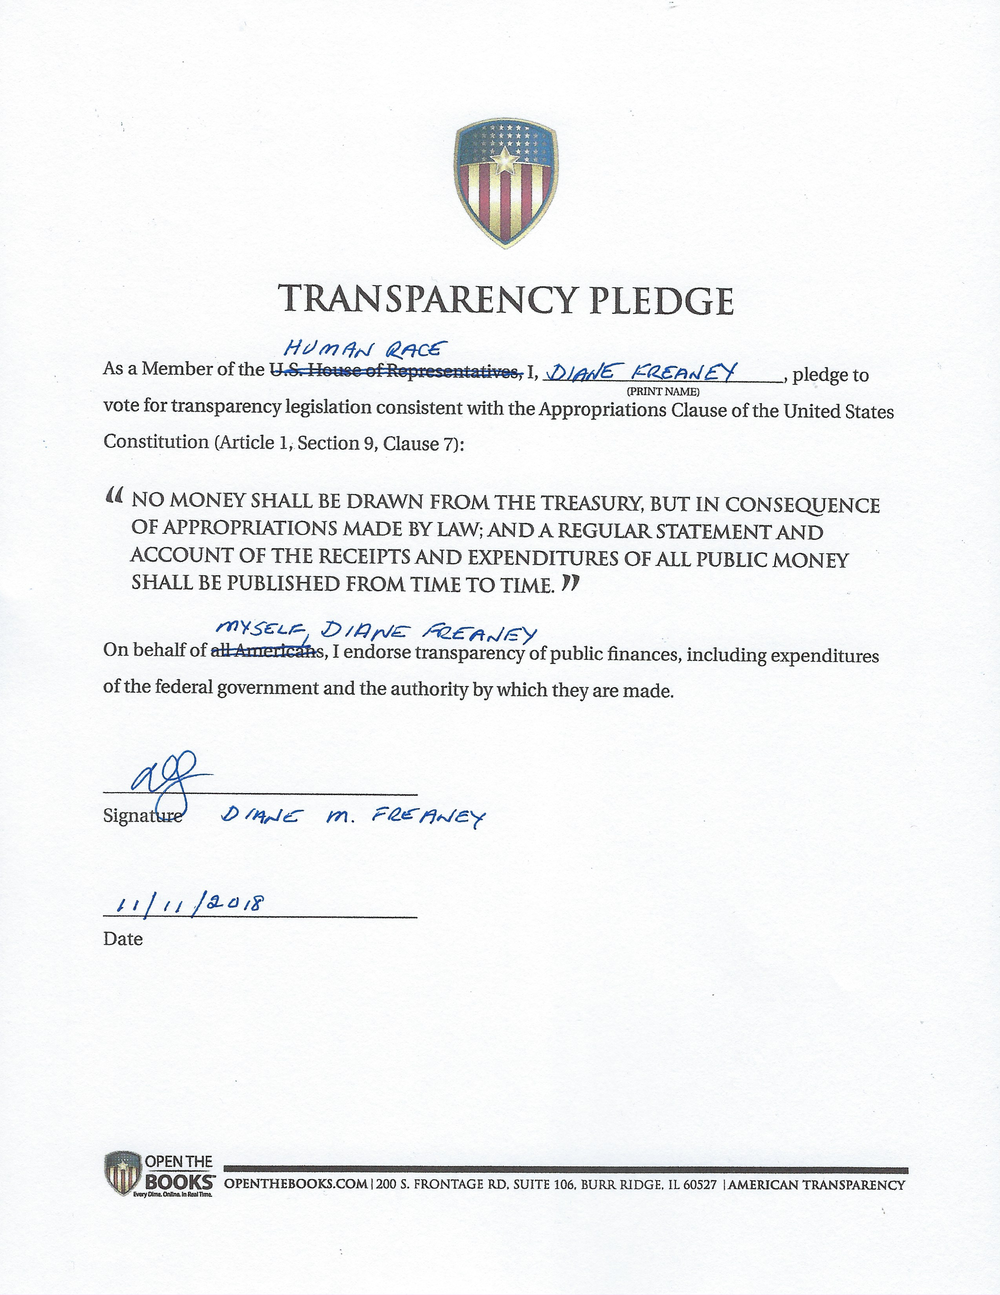 2018-11-11_Transparency_Pledge_DMF.png